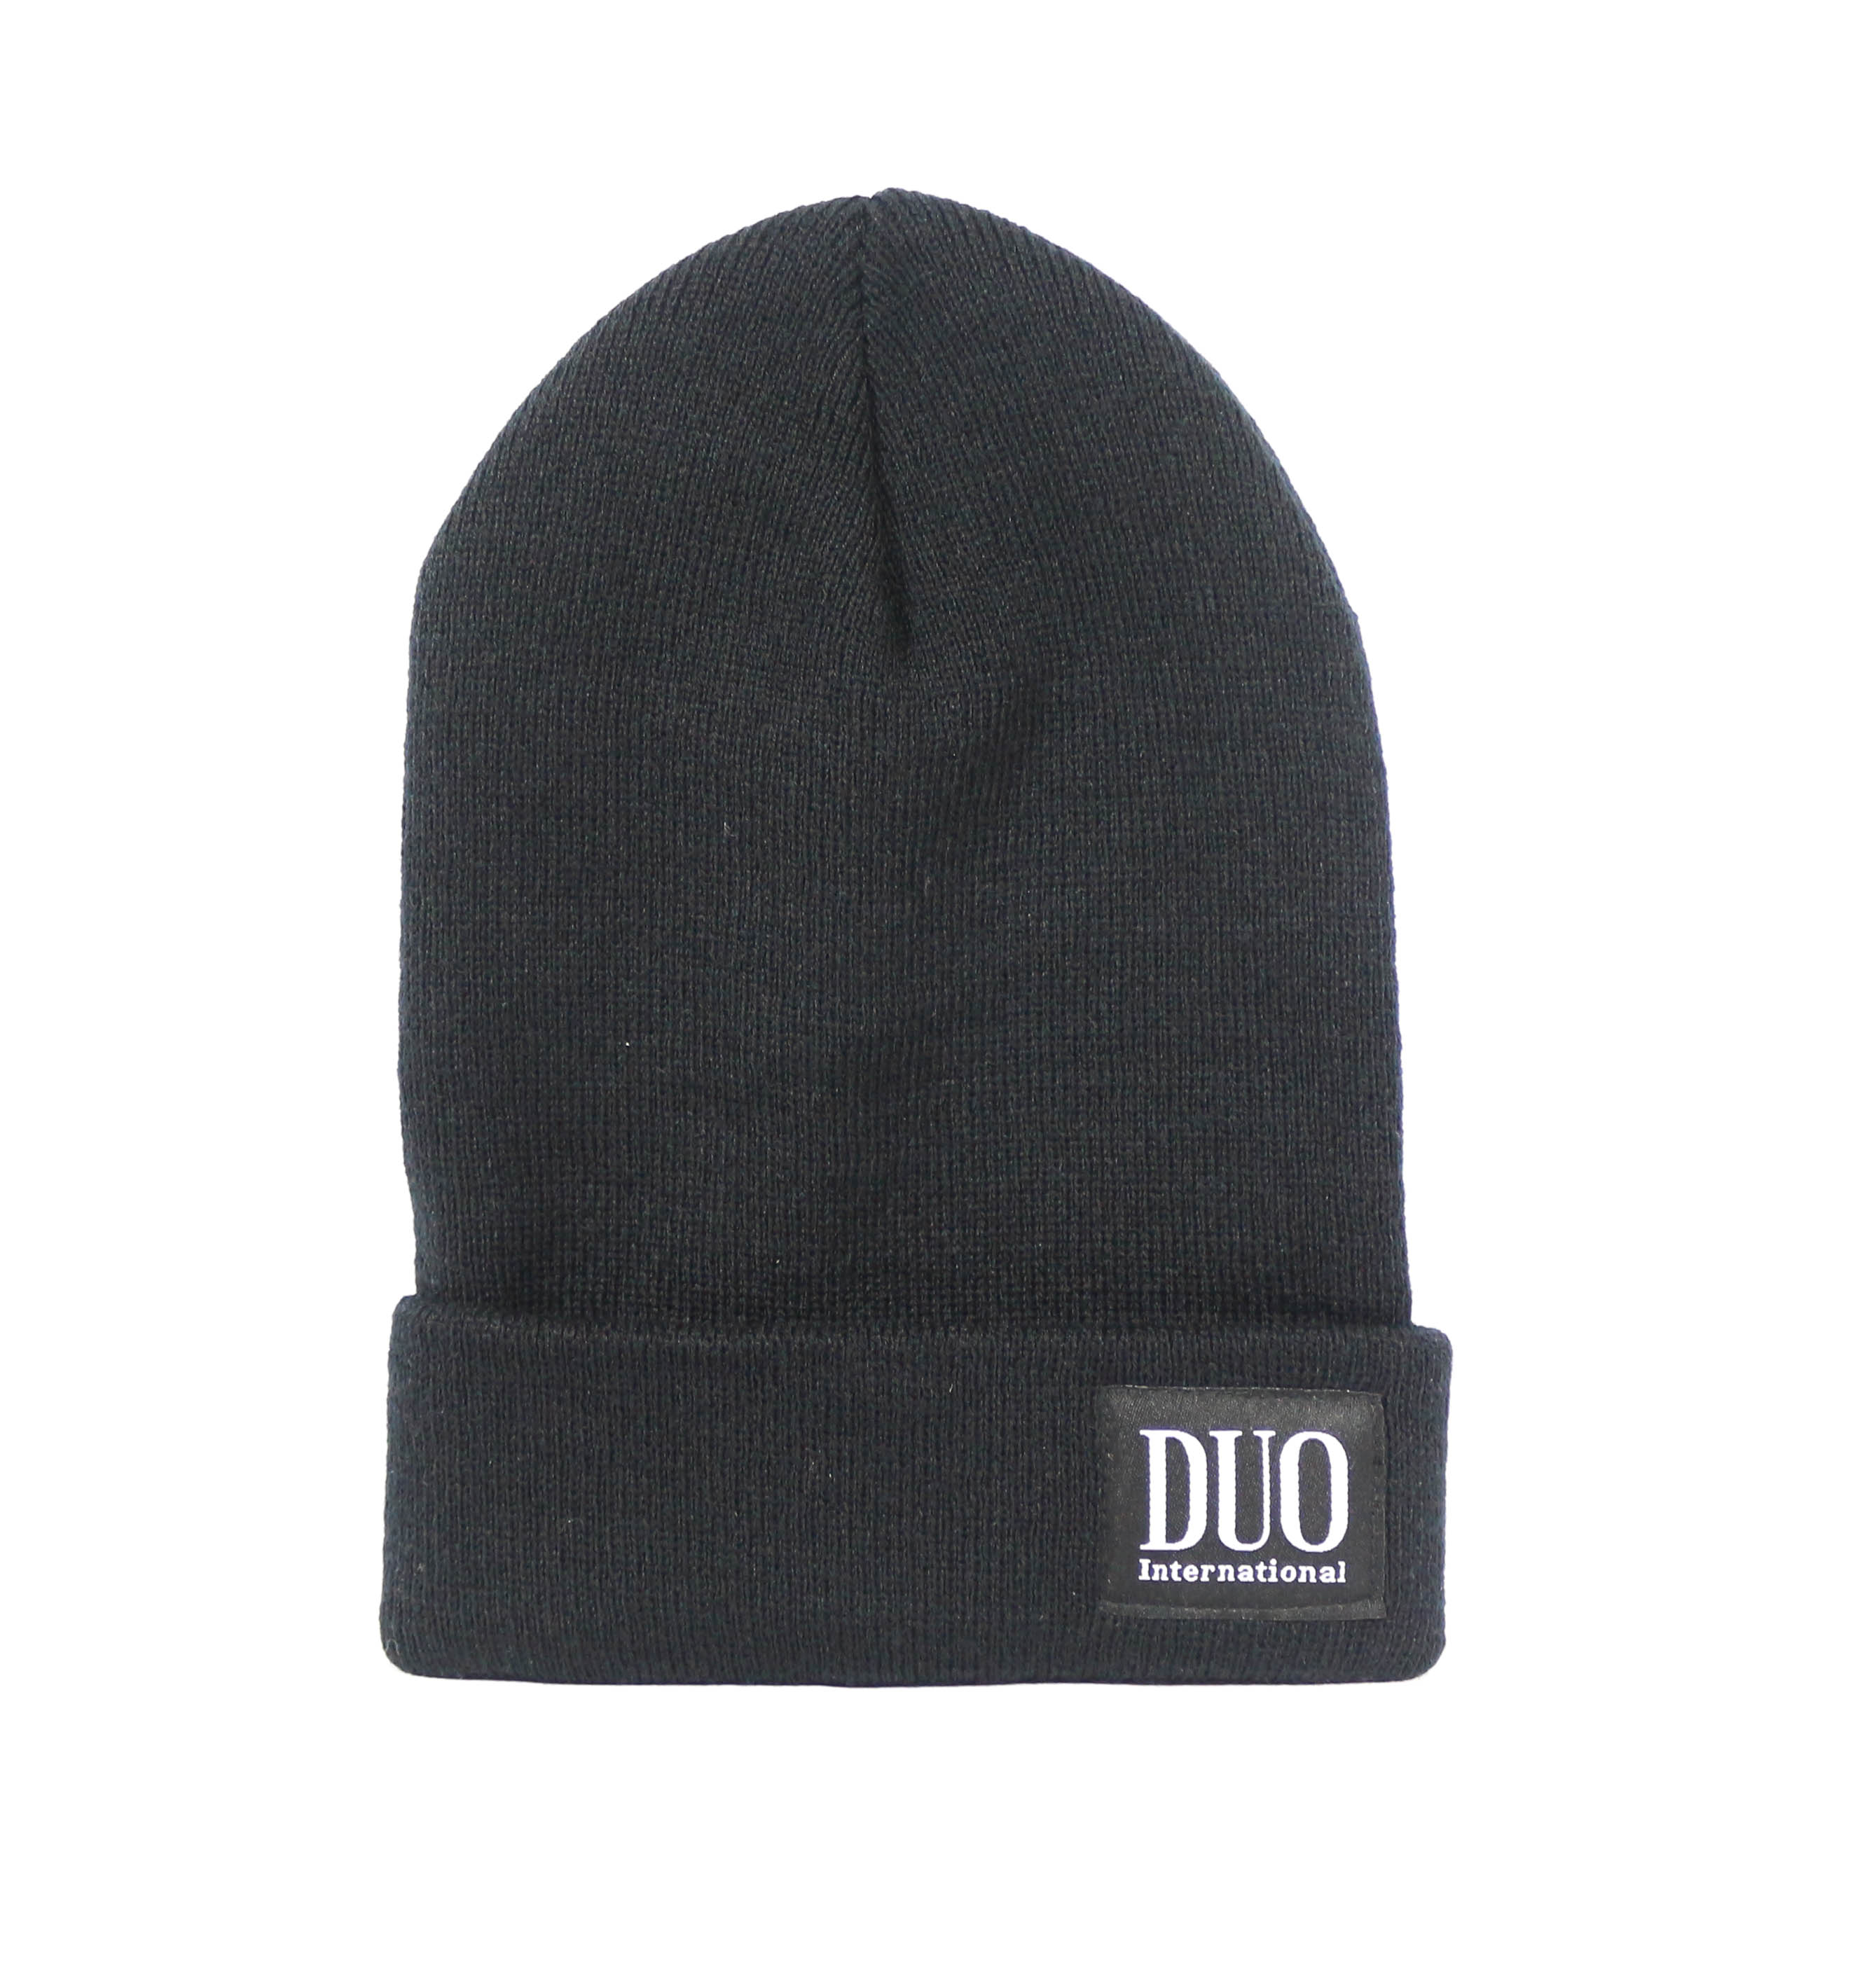 Duo Hat Beanie for Cold Weather Black (1251)